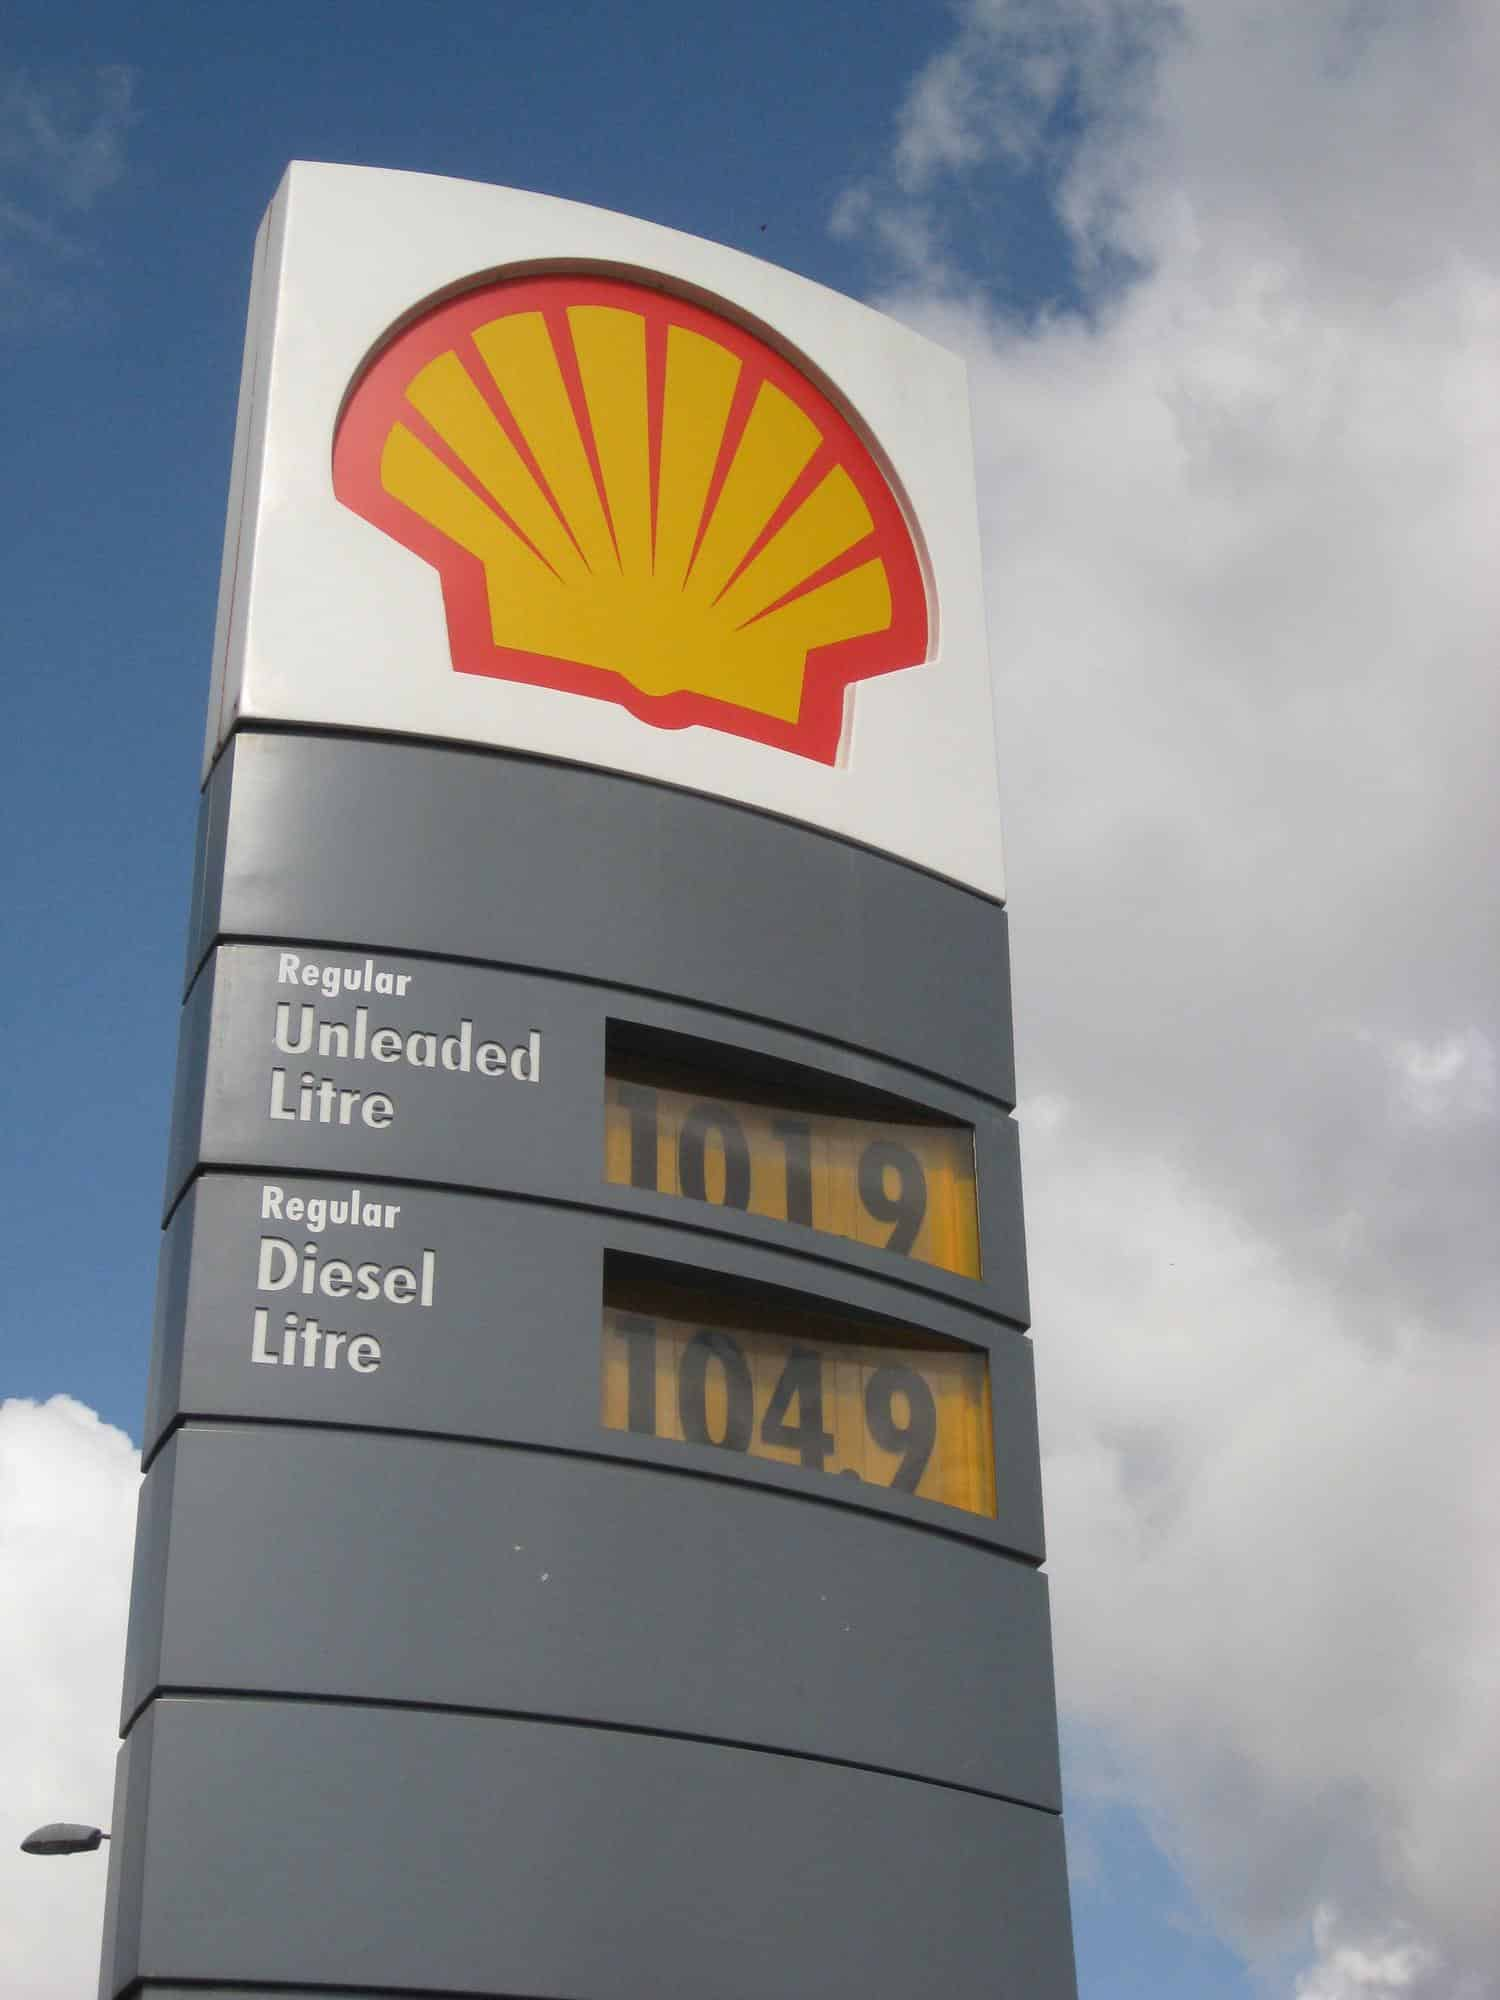 fuel pricing is a hot topic in politics